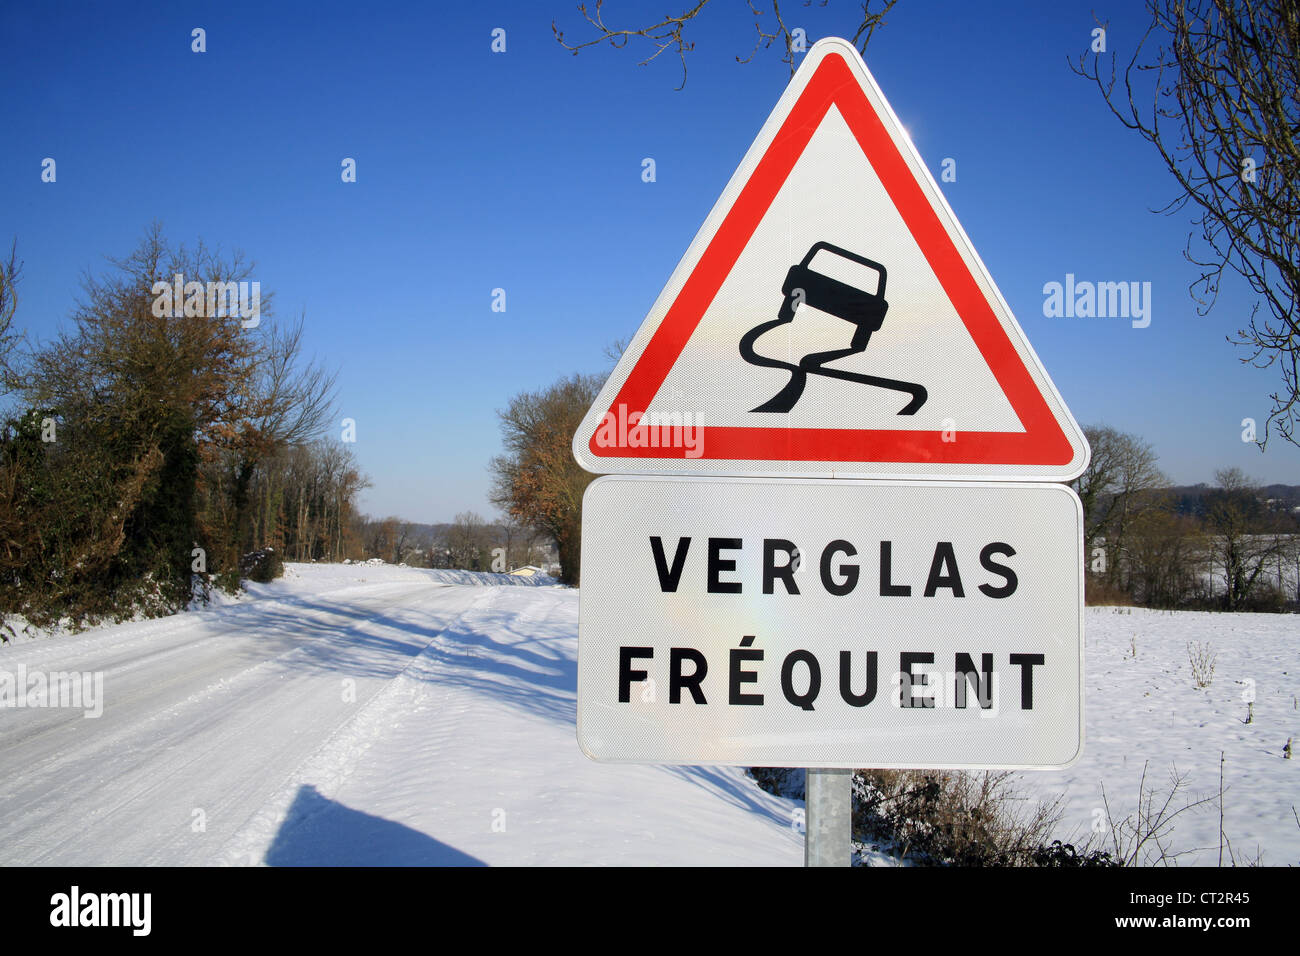 Road sign in France - Stock Image